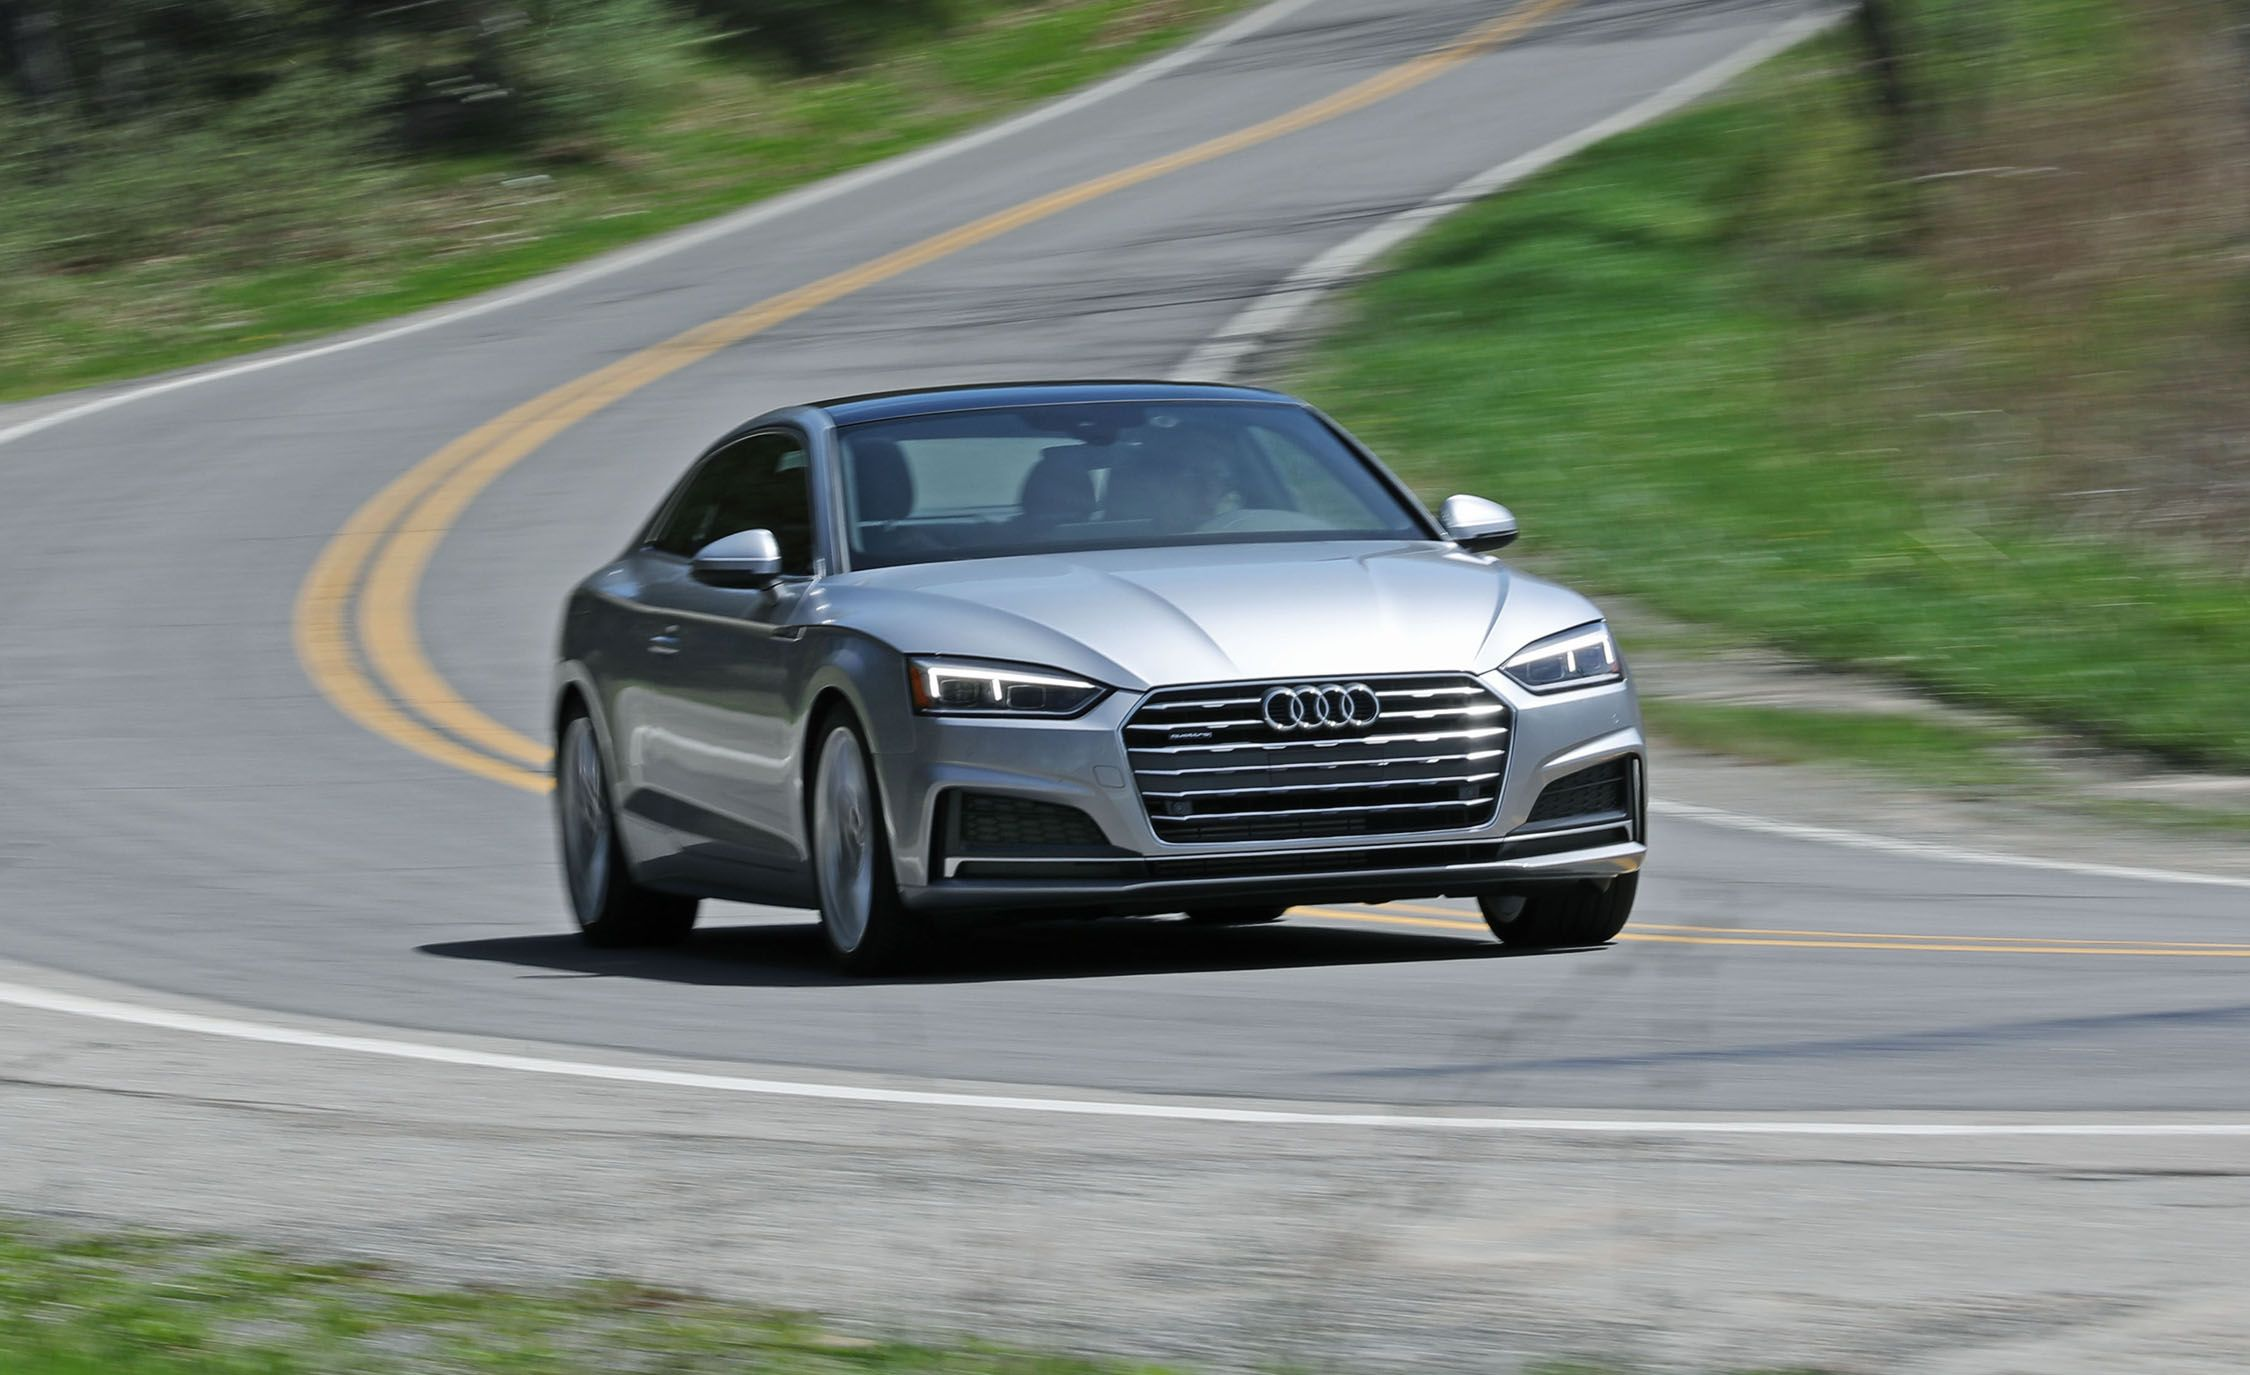 2018 Audi A5 | In-Depth Model Review | Car and Driver